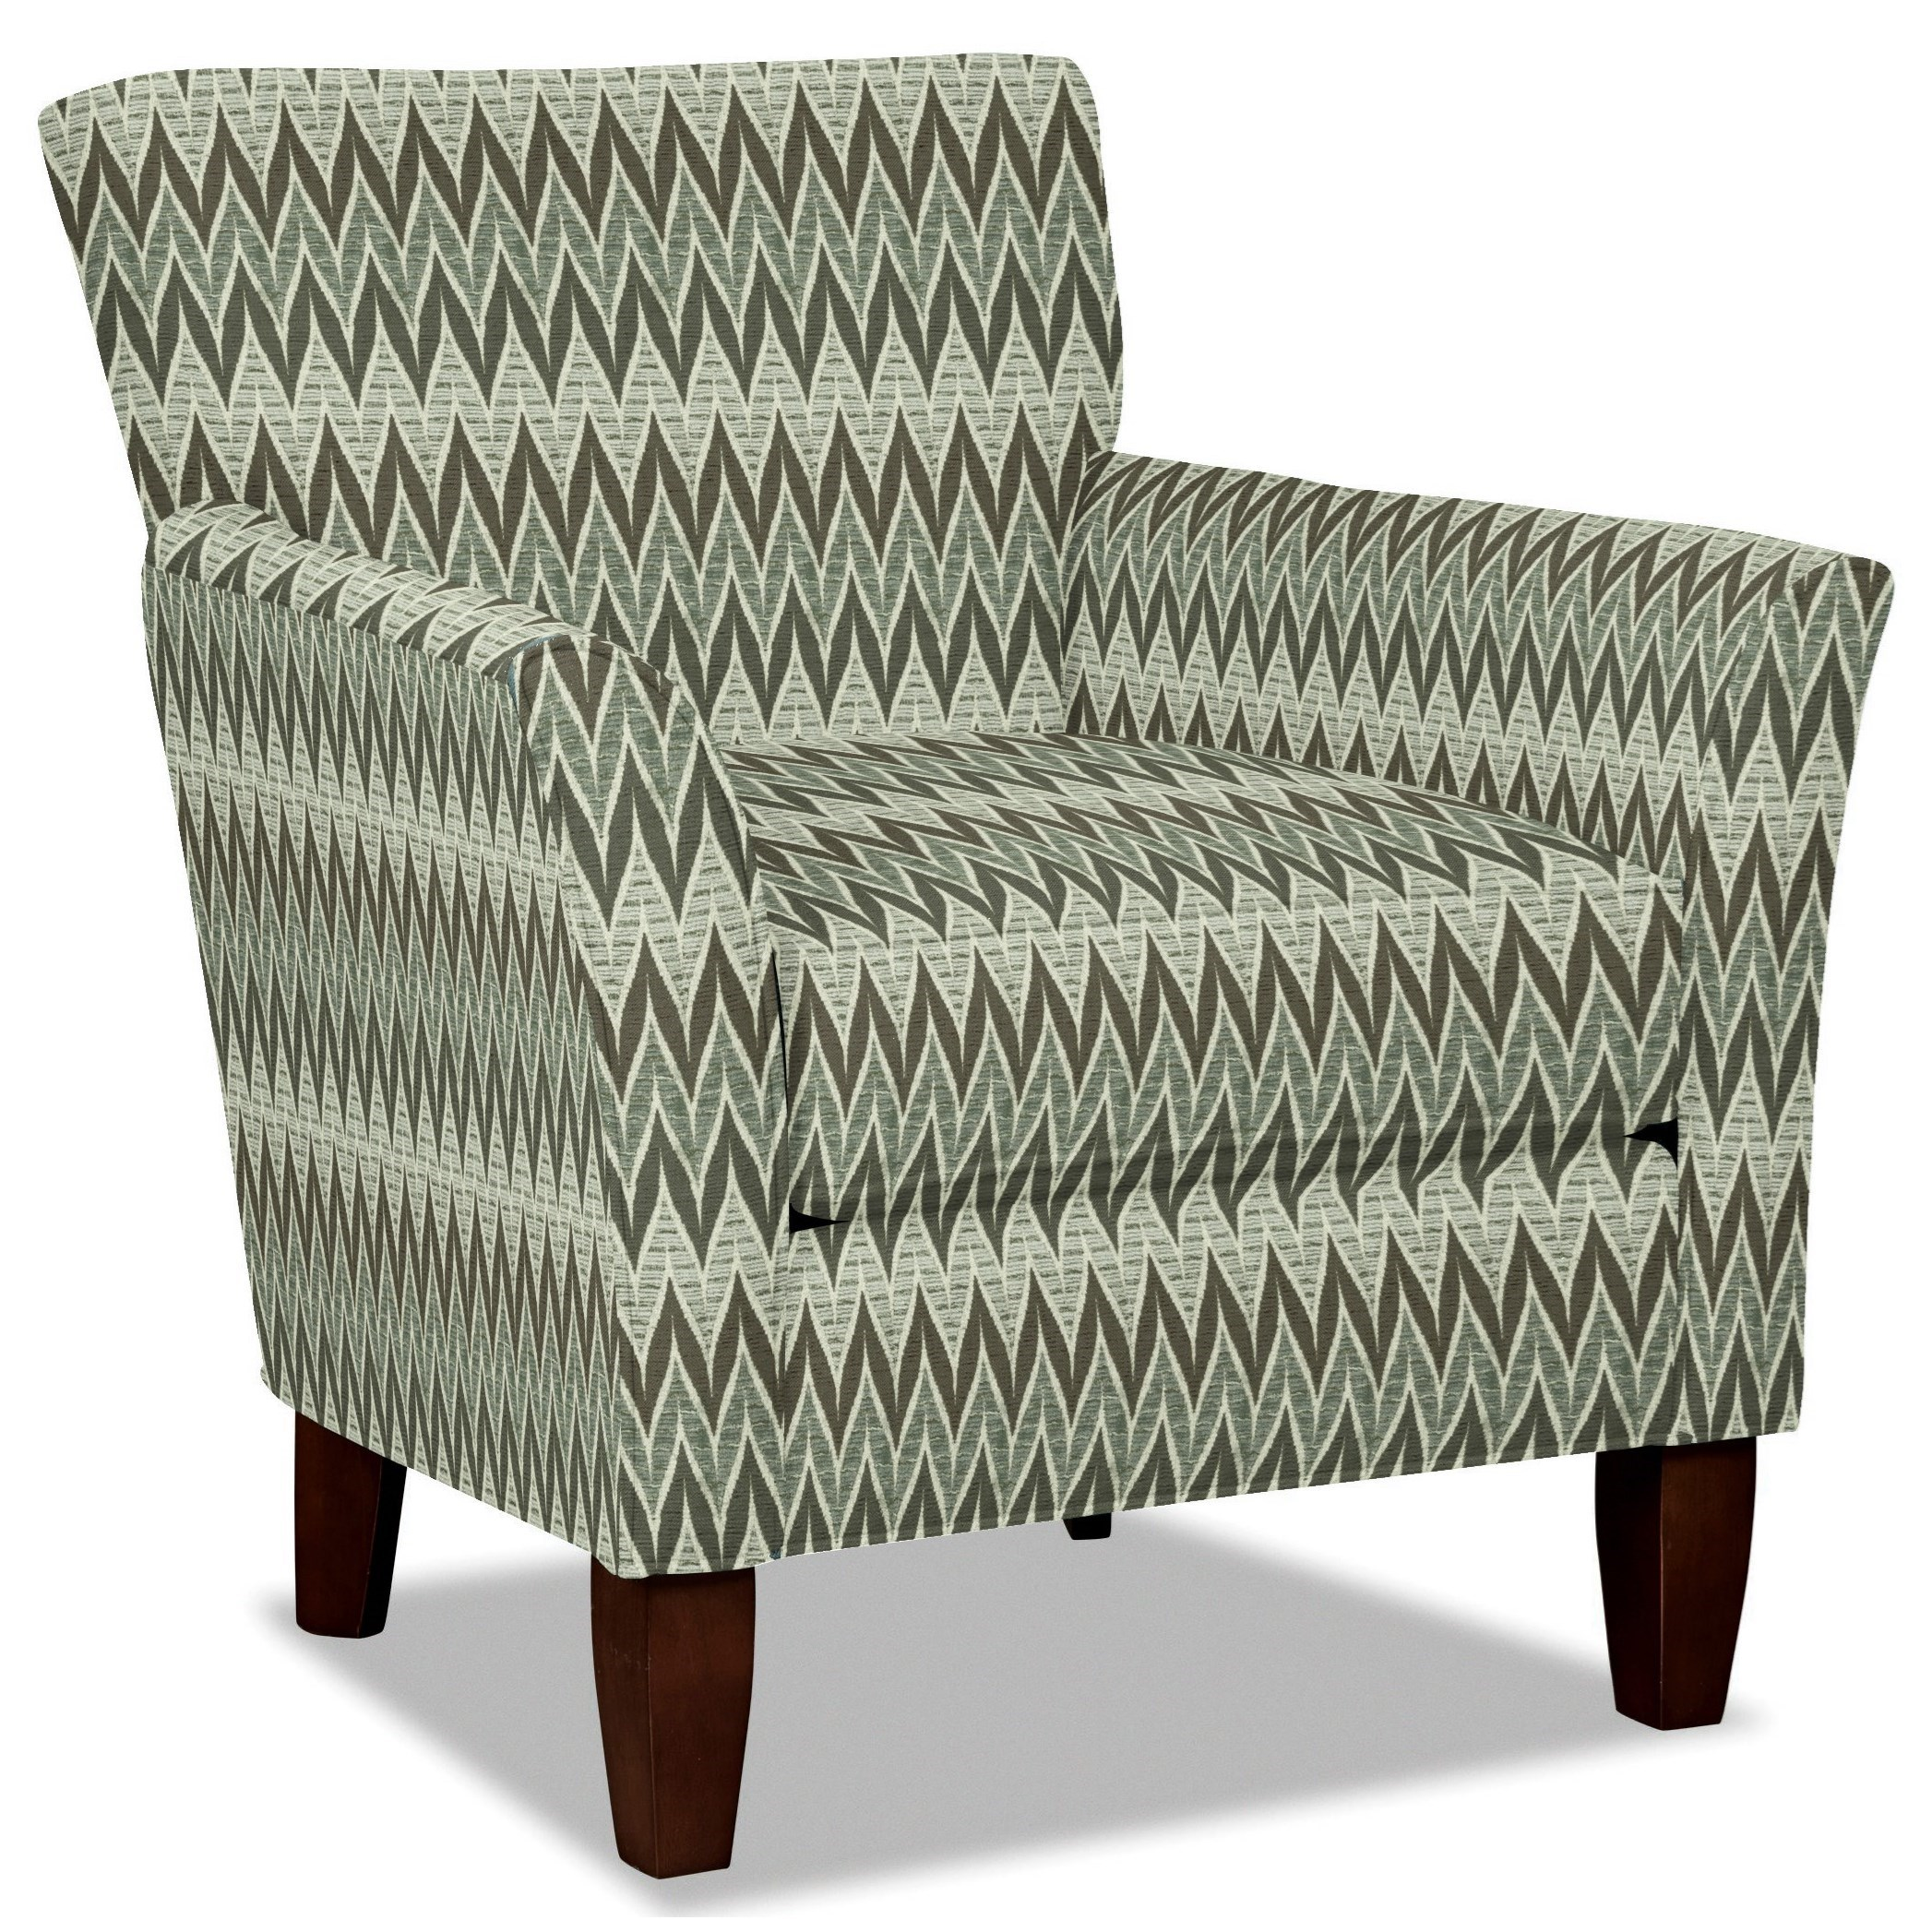 Craftmaster 060110 Accent Chair - Item Number: 060110-SEISMIC-22